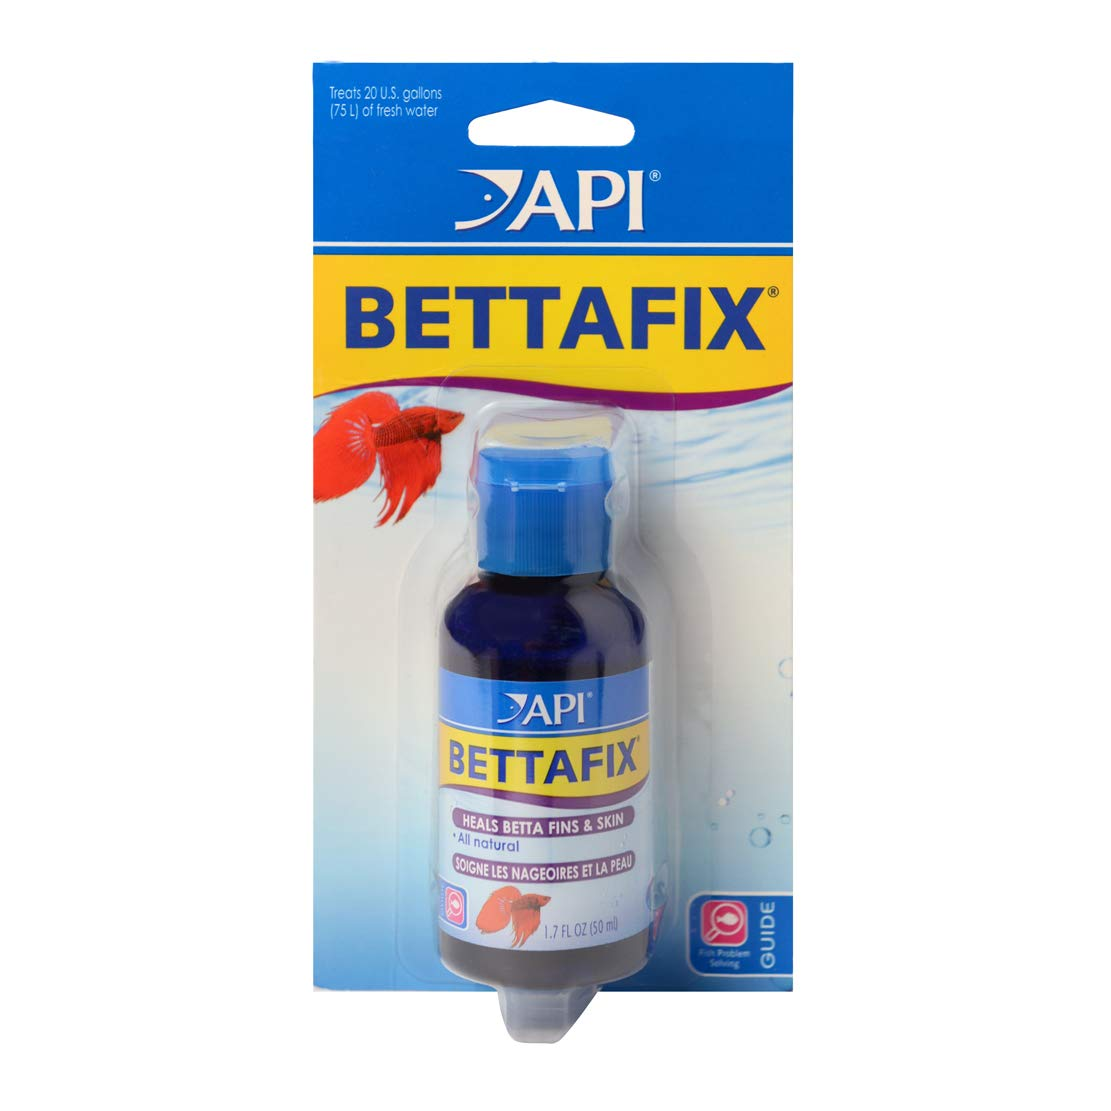 API bettafix Antibacteriano y antifúngico Betta Peces Infección y Hongos Remedy 1.7-Ounce Botella: Amazon.es: Productos para mascotas